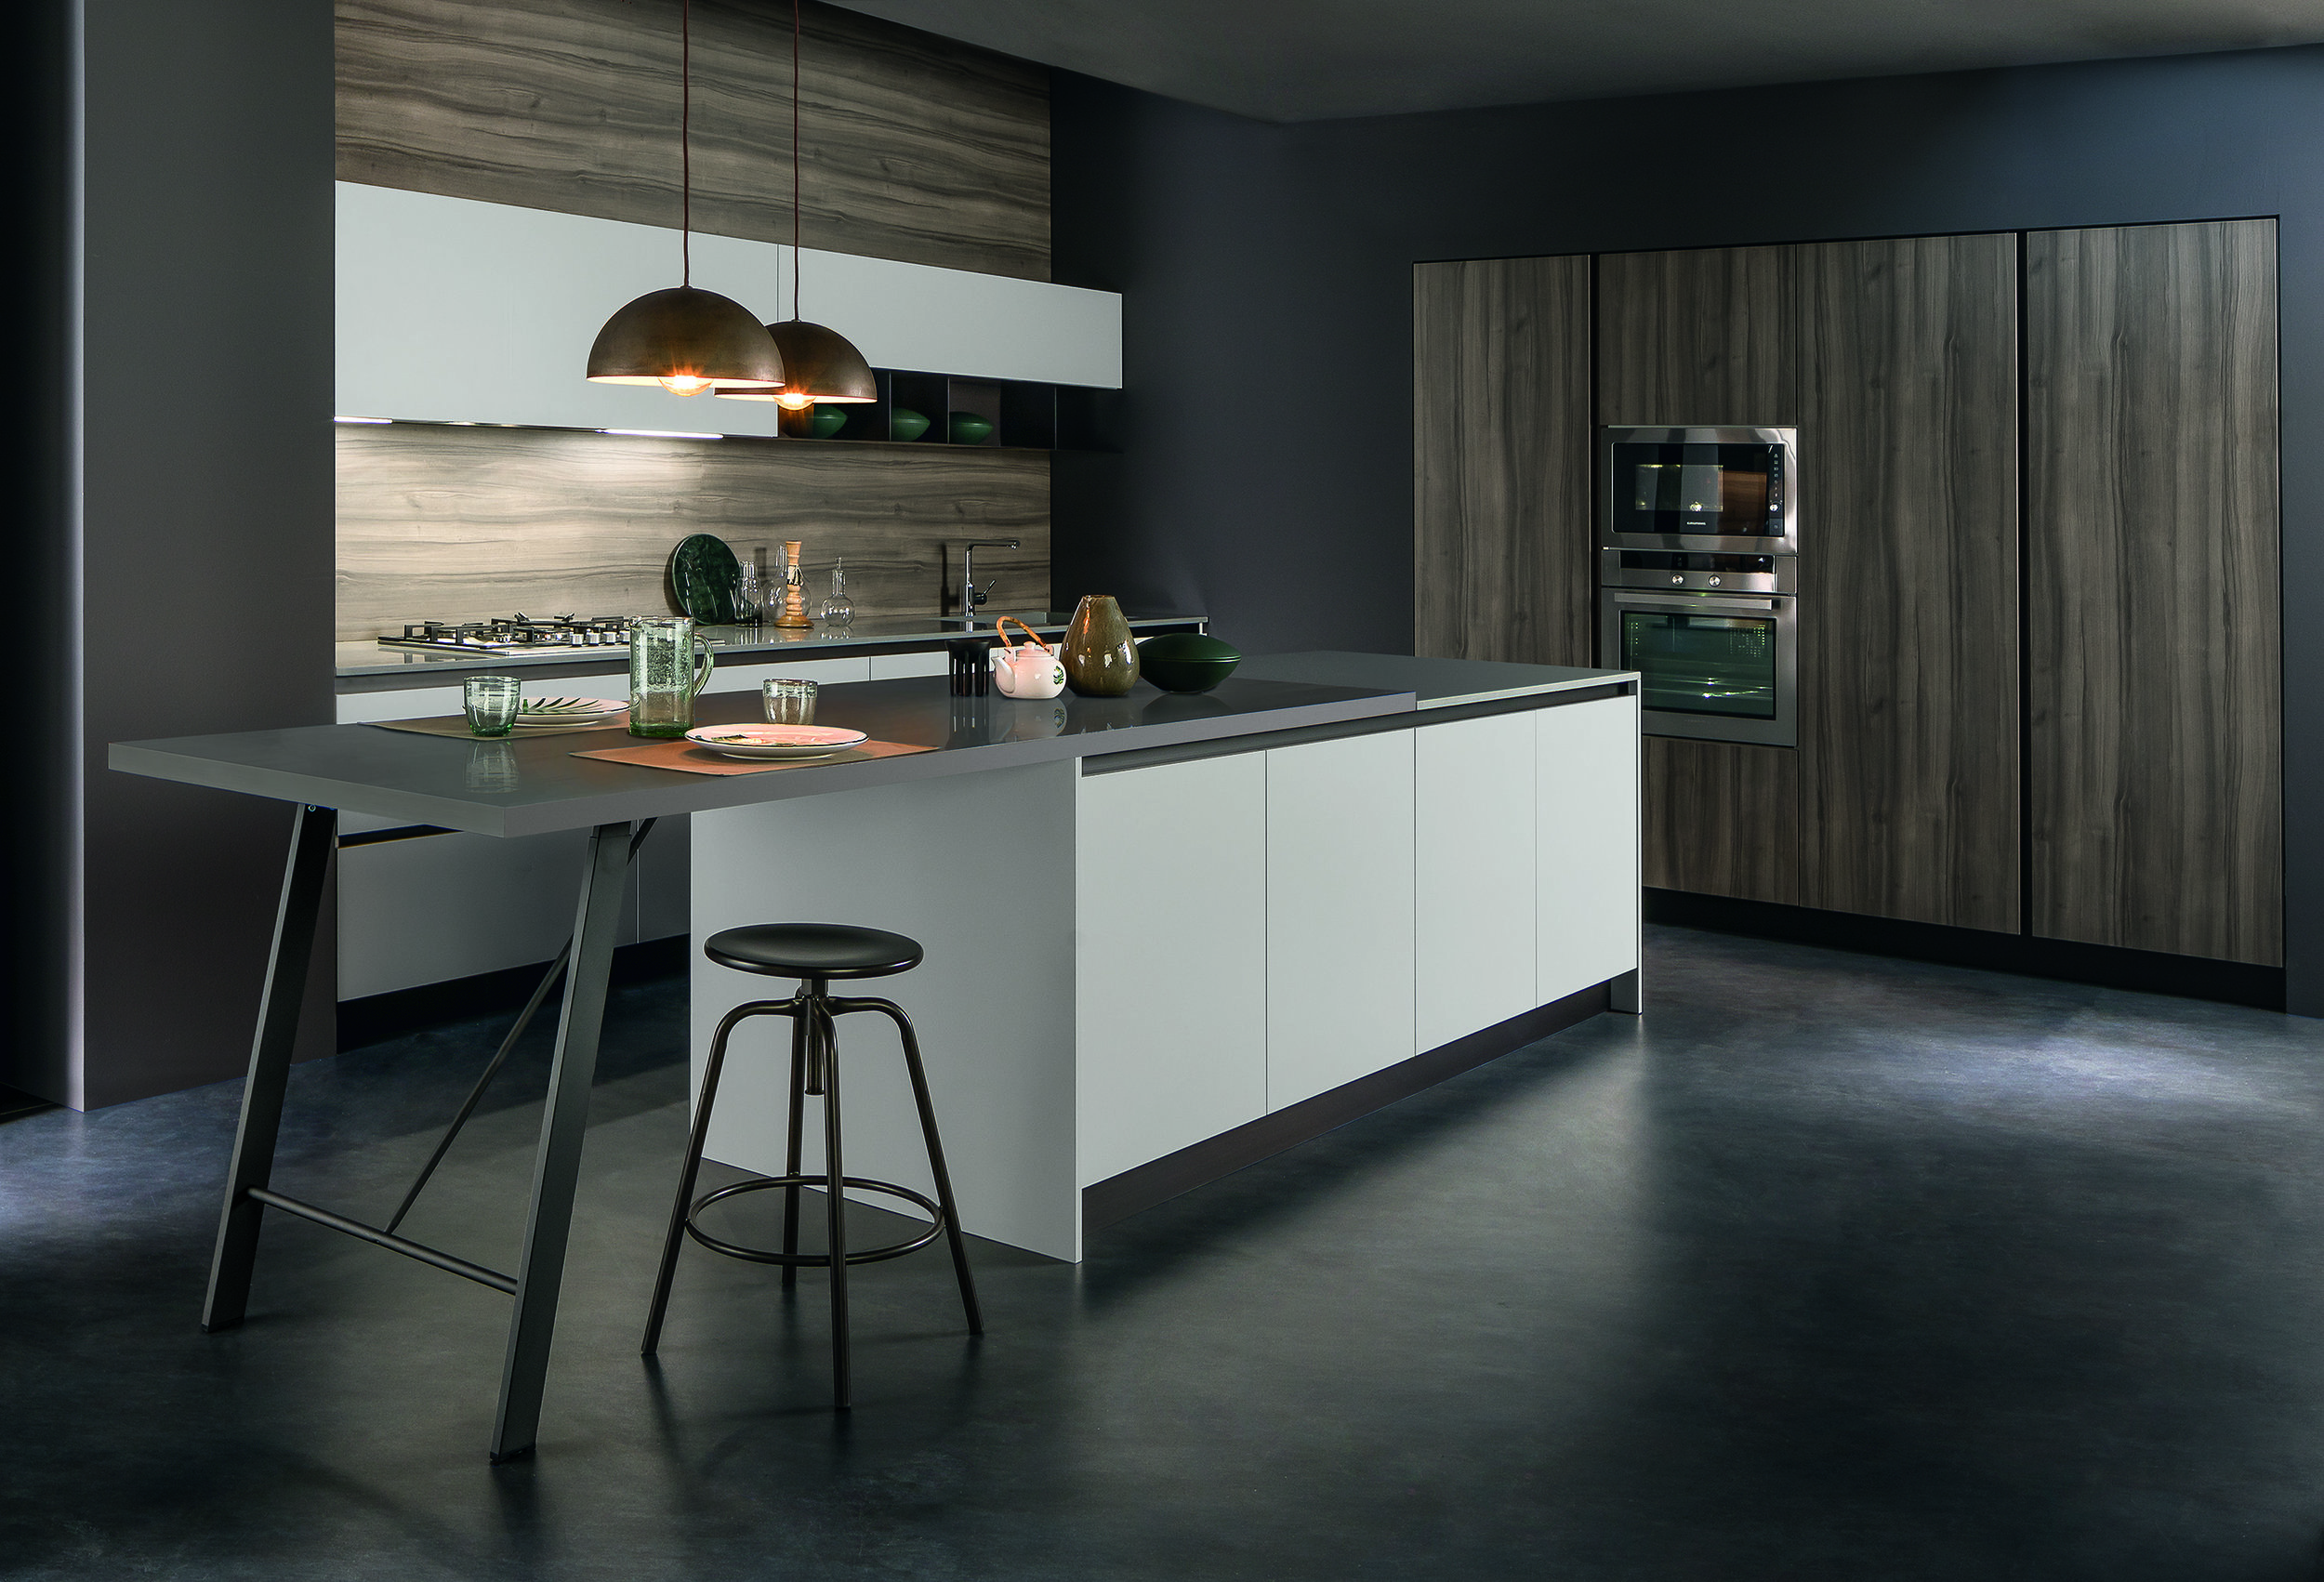 masters of design, the italians really know how to make a kitchen 'sing'!